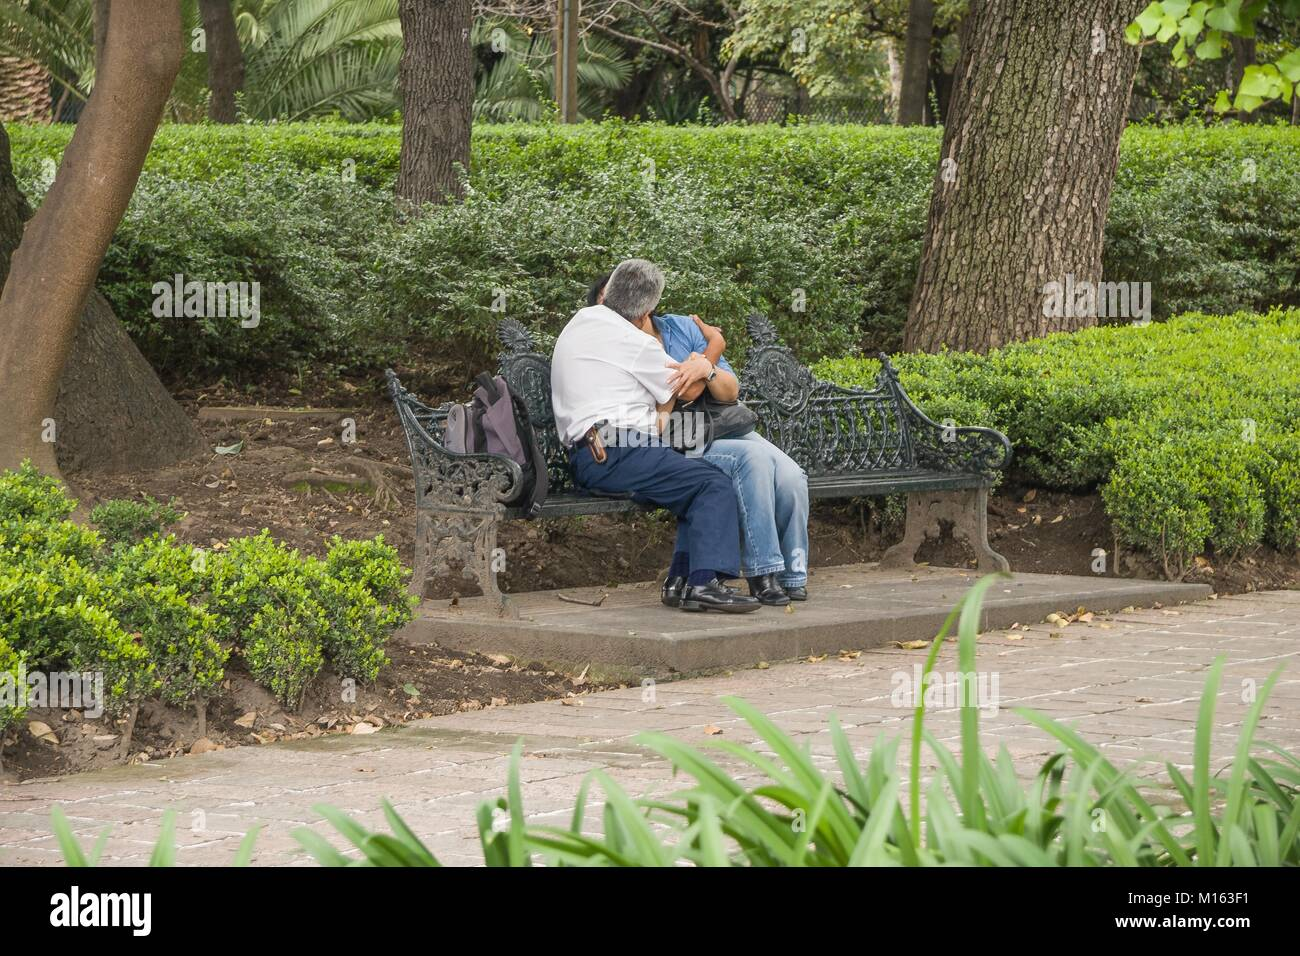 Couple of adults on a bench in a park in Mexico City. - Stock Image